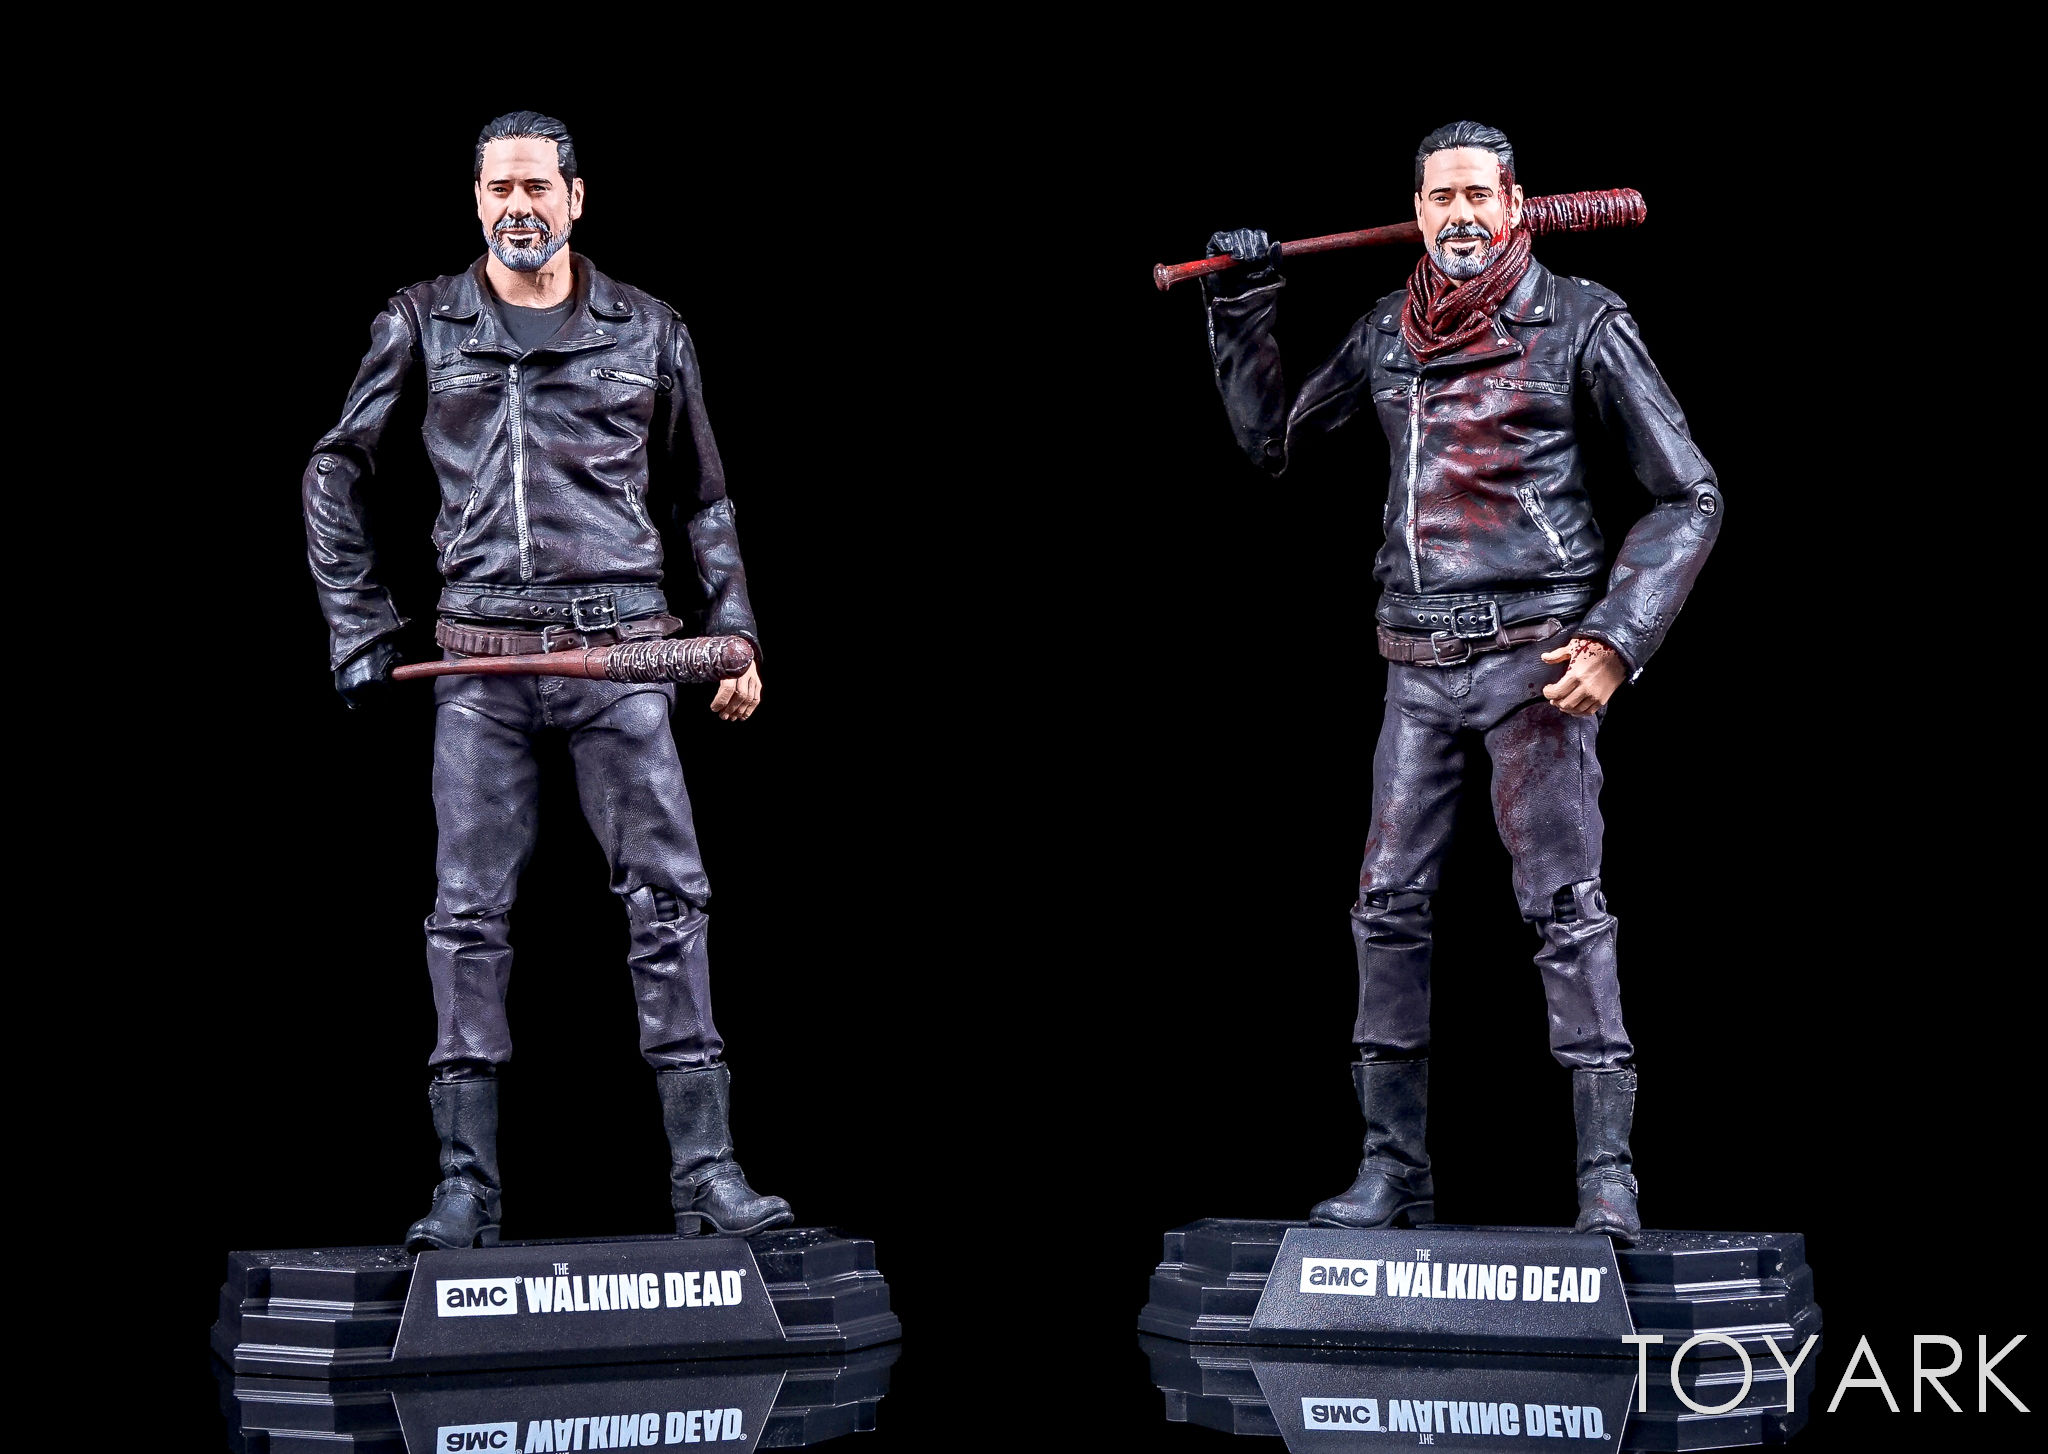 http://news.toyark.com/wp-content/uploads/sites/4/2017/05/McFarlane-Walking-Dead-Negan-028.jpg